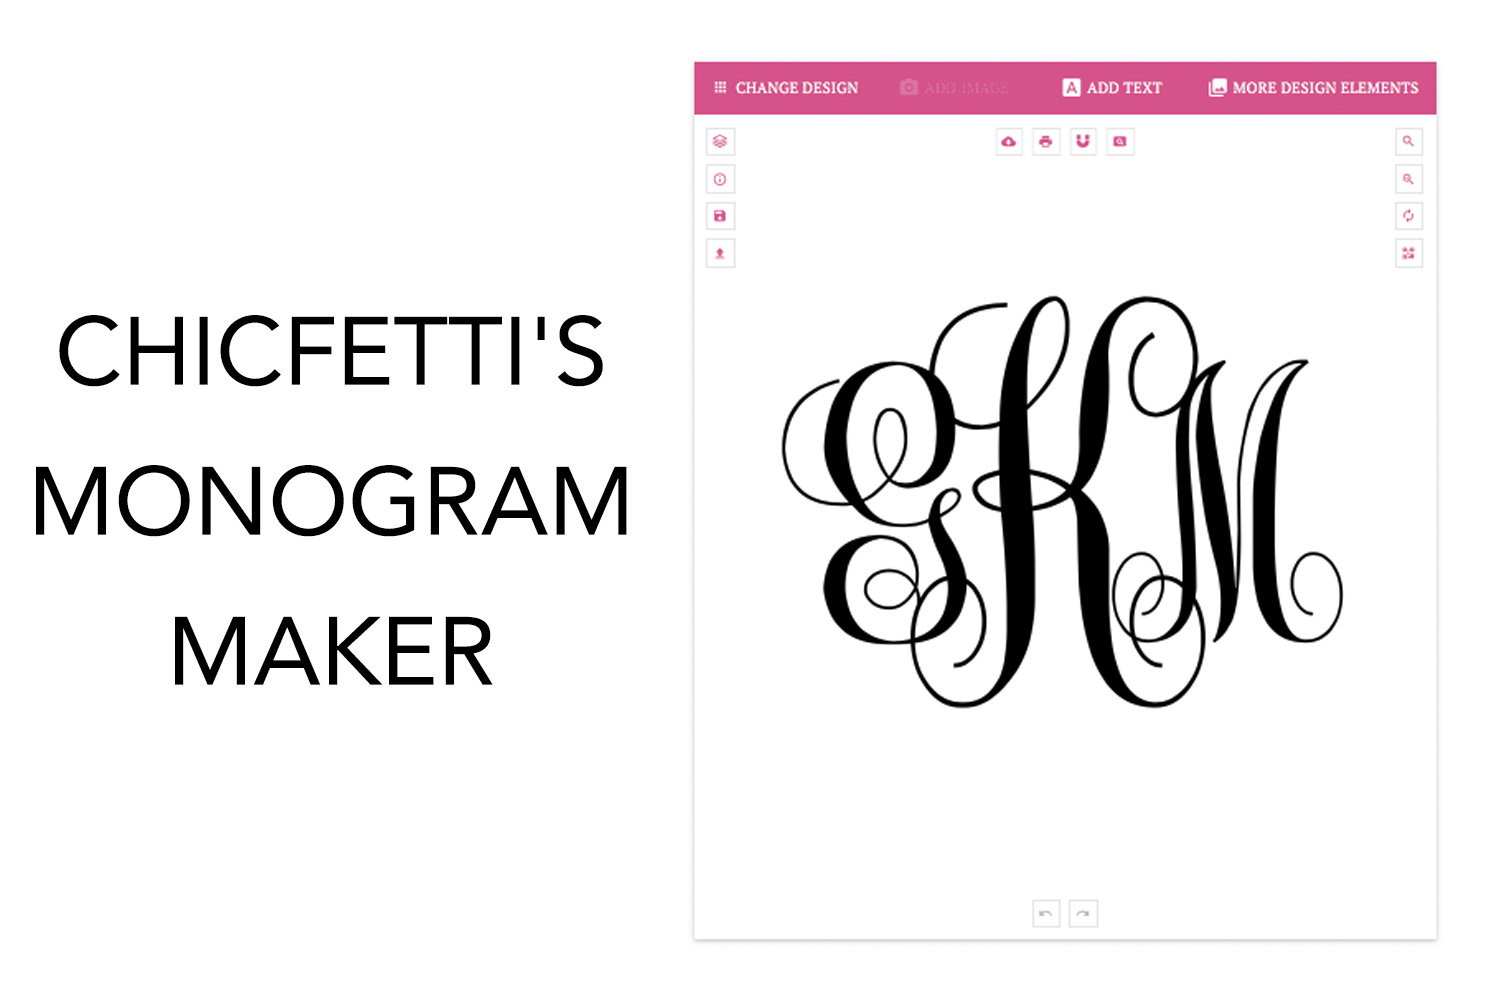 Monogram Maker - Make Your Own Monograms Using Our Free Online Maker - Free Printable Monogram